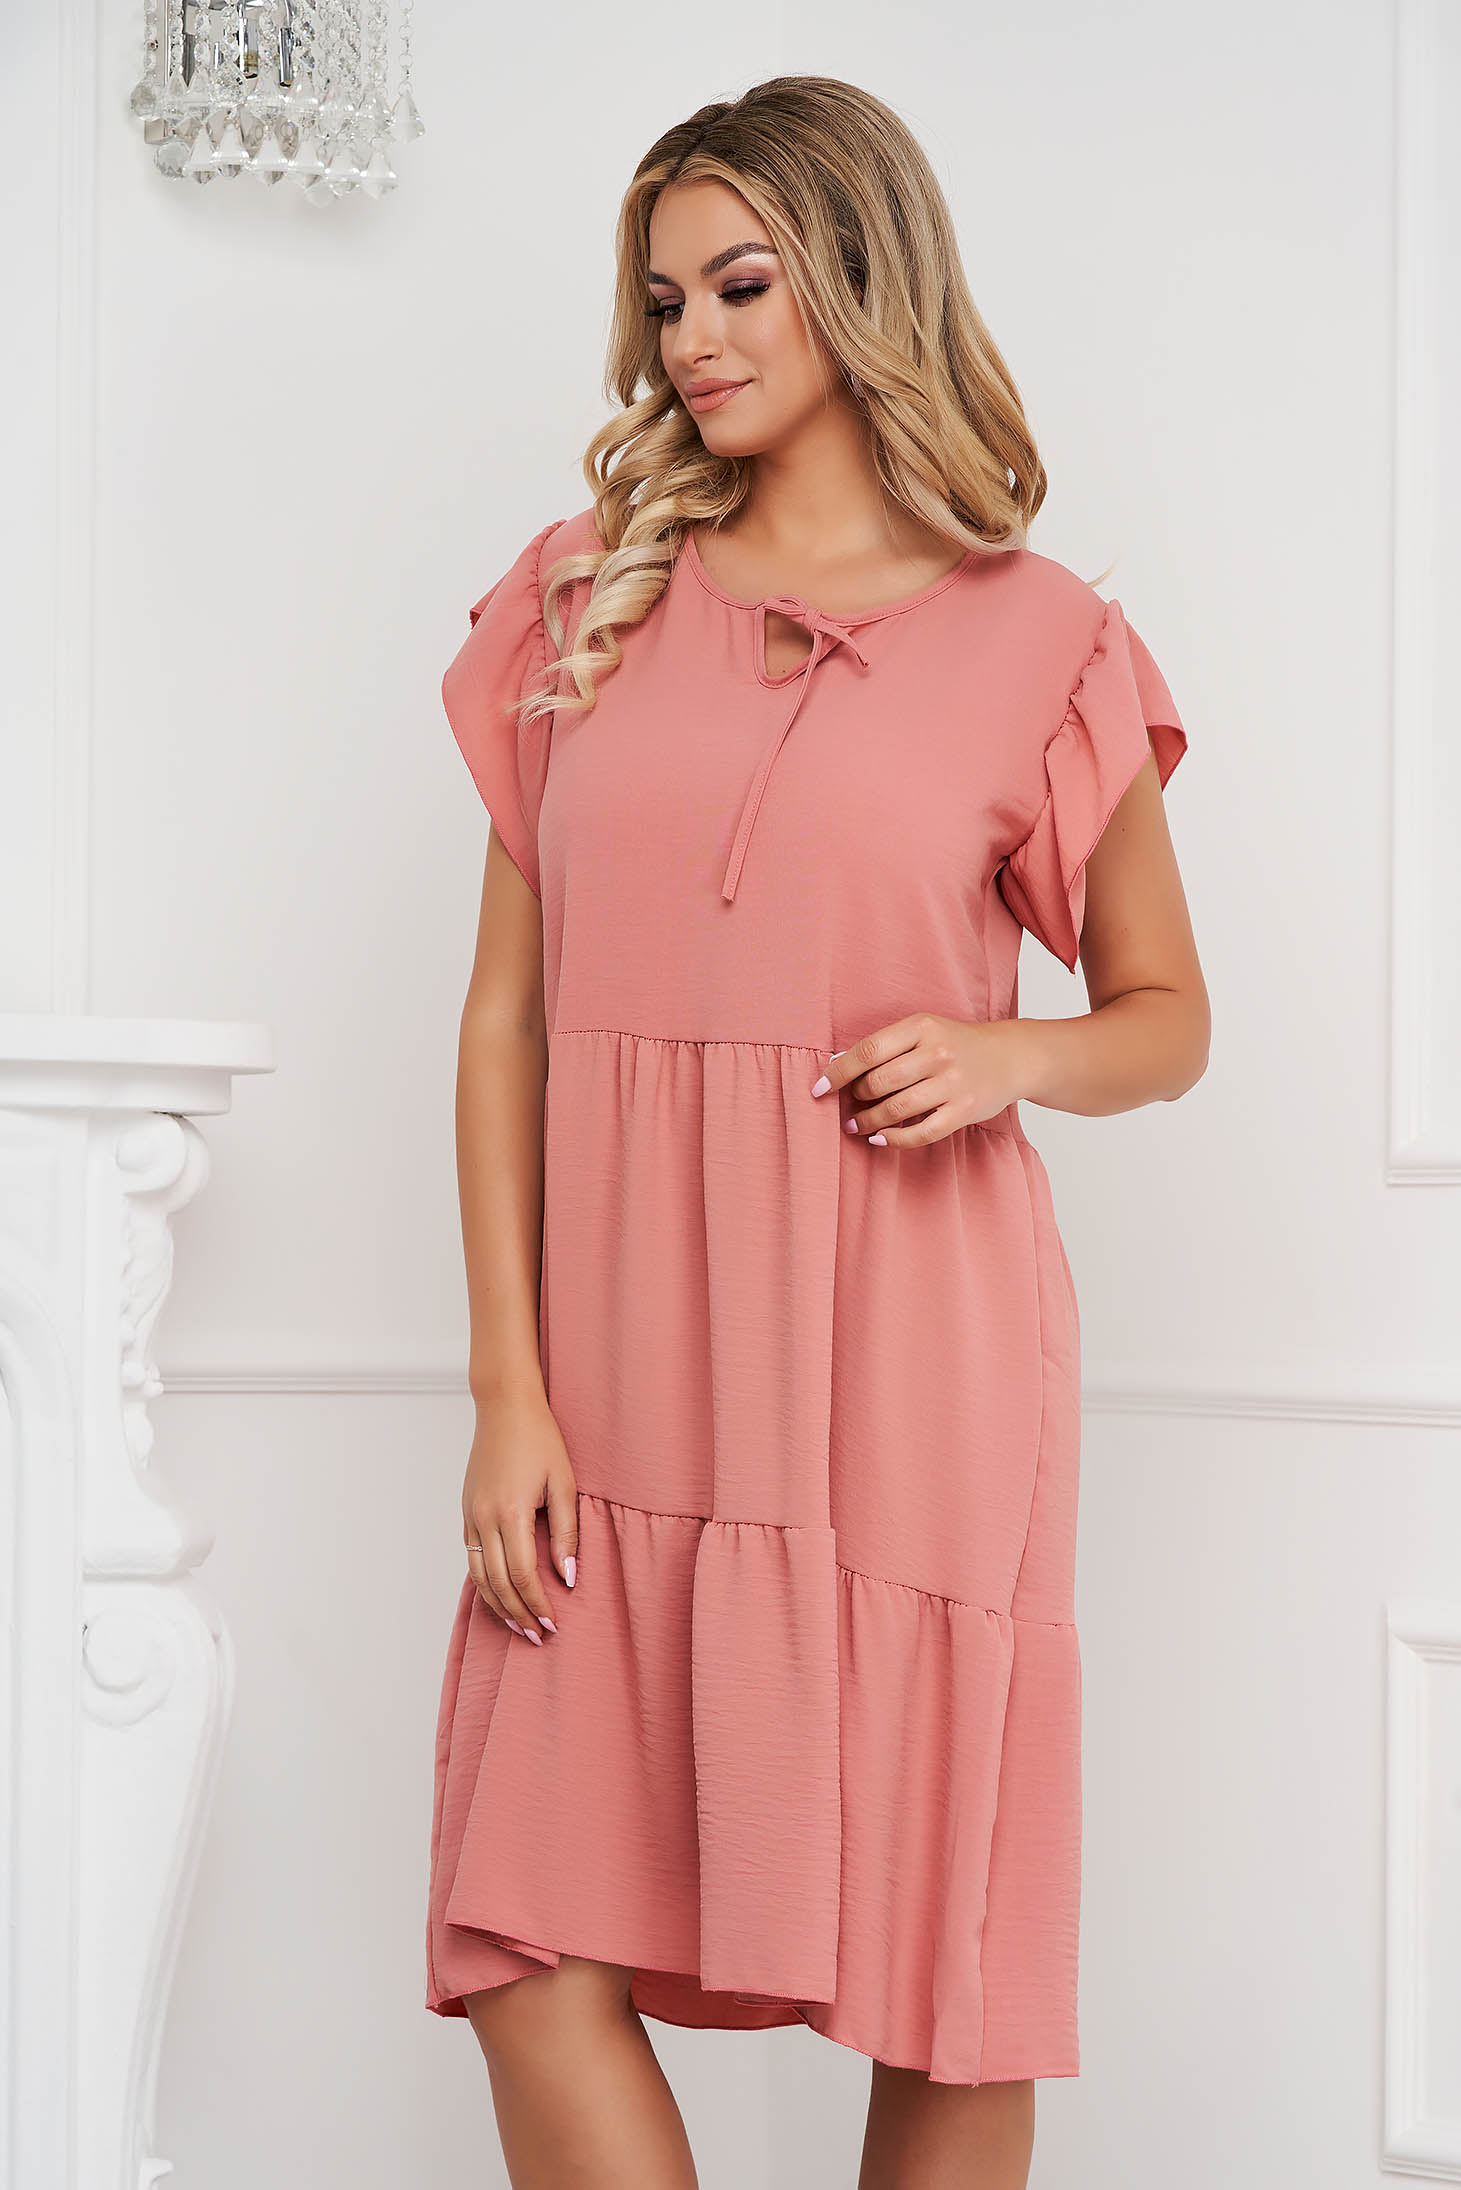 Lightpink dress midi loose fit airy fabric with ruffle details